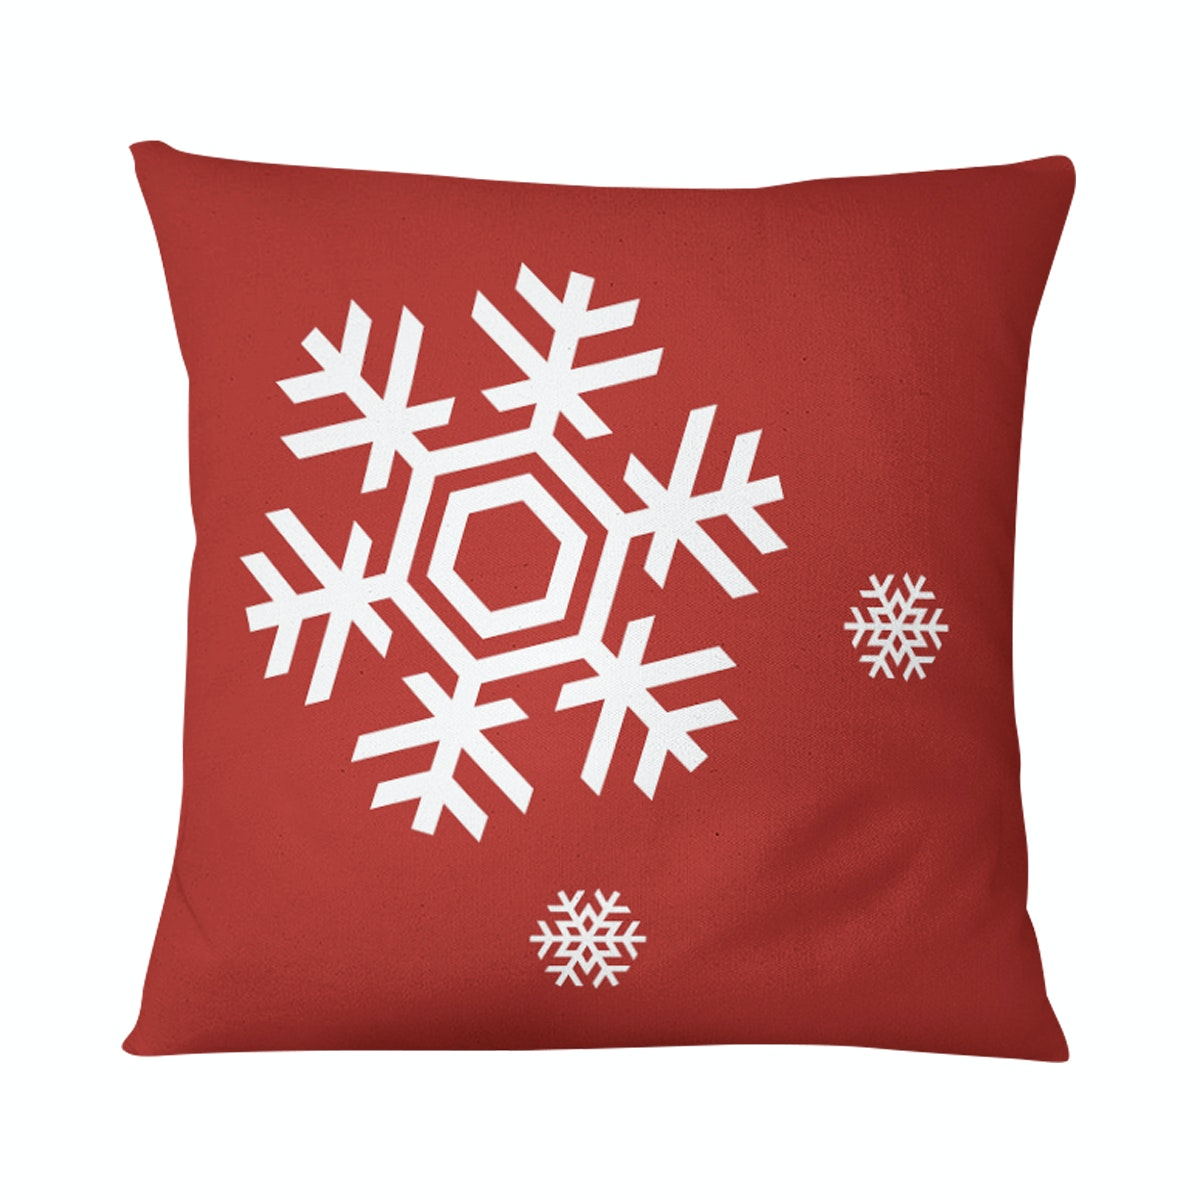 Tees Christmas Pillow 40X40Cm (Insert+Cushion Cover 40X40Cm)